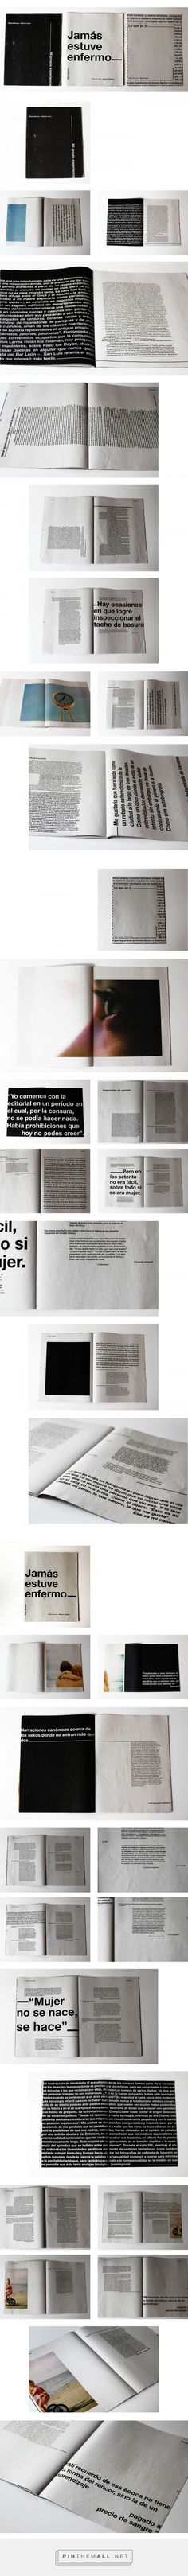 : Fascículos Coleccionables : Vida de Vivos - editorial on Behance... - a grouped images picture - Pin Them All